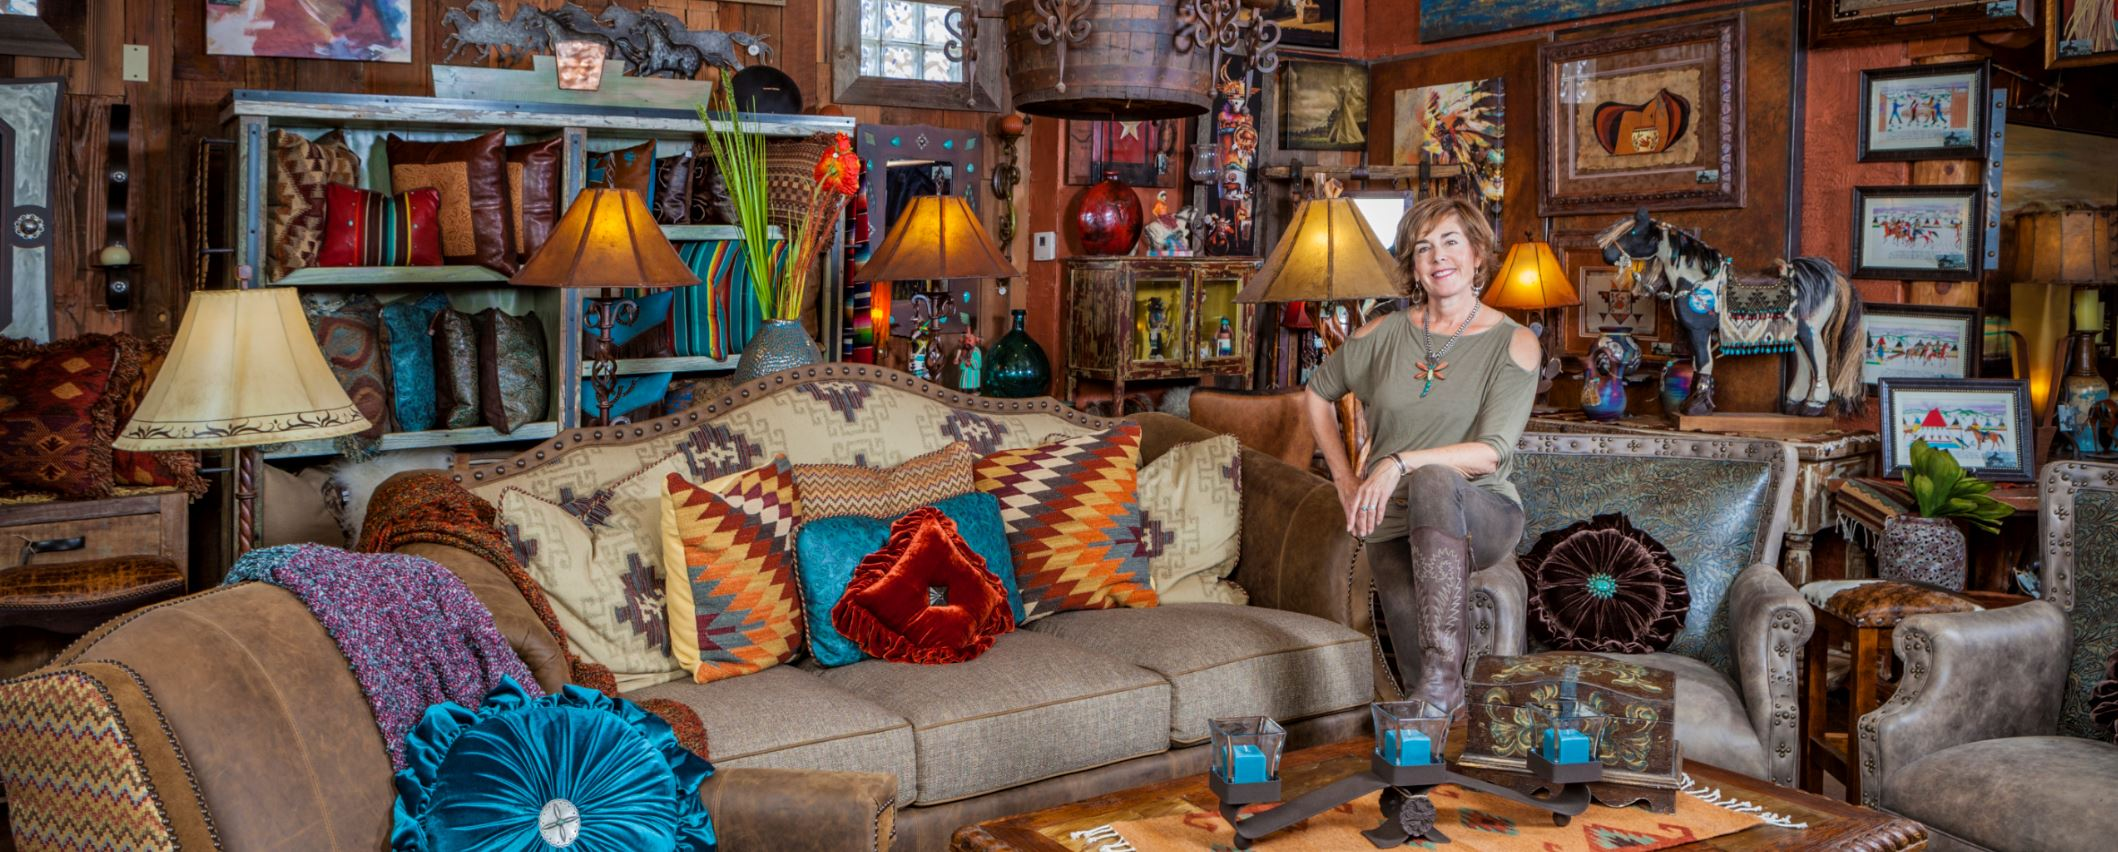 Faith the owner at Big Bronco Furniture Store